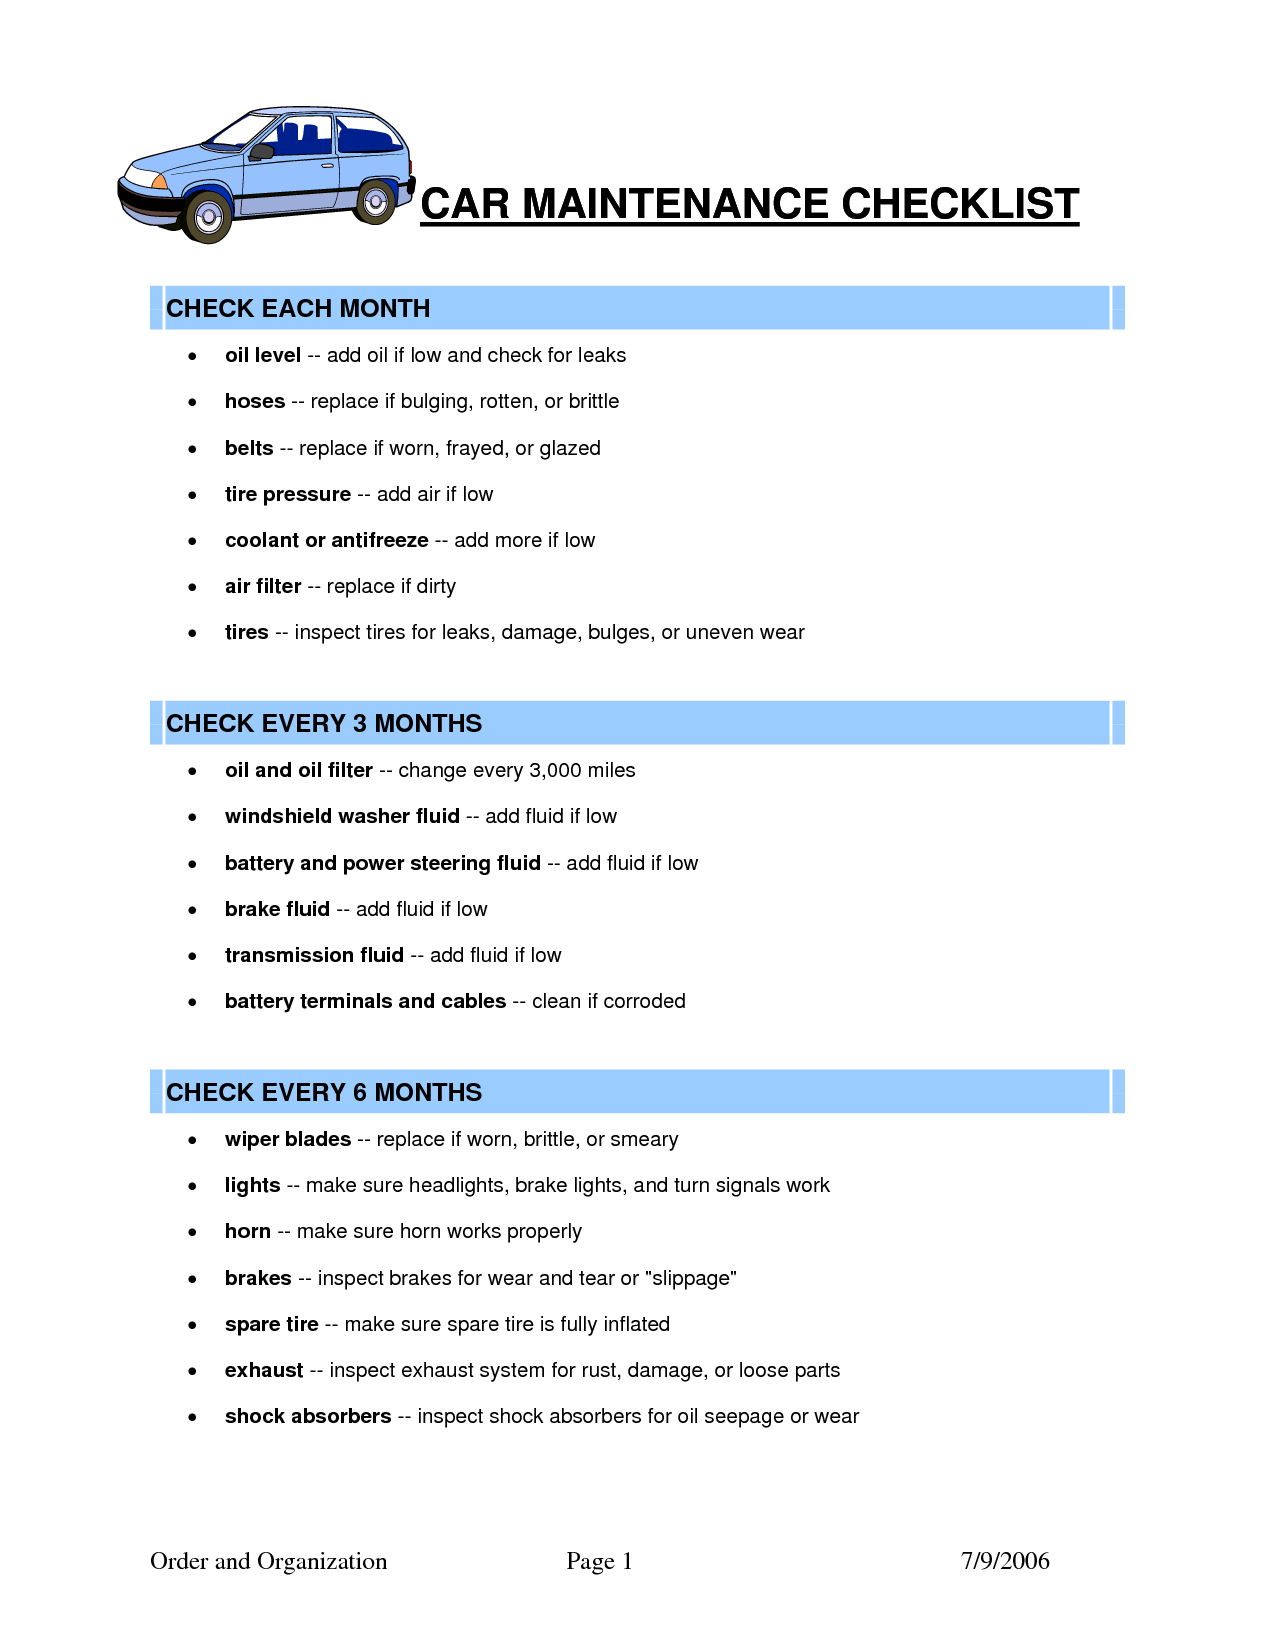 car maintenance checklist | CAR MAINTENANCE CHECKLIST CAR MAINTENANCE  CHECKLIST